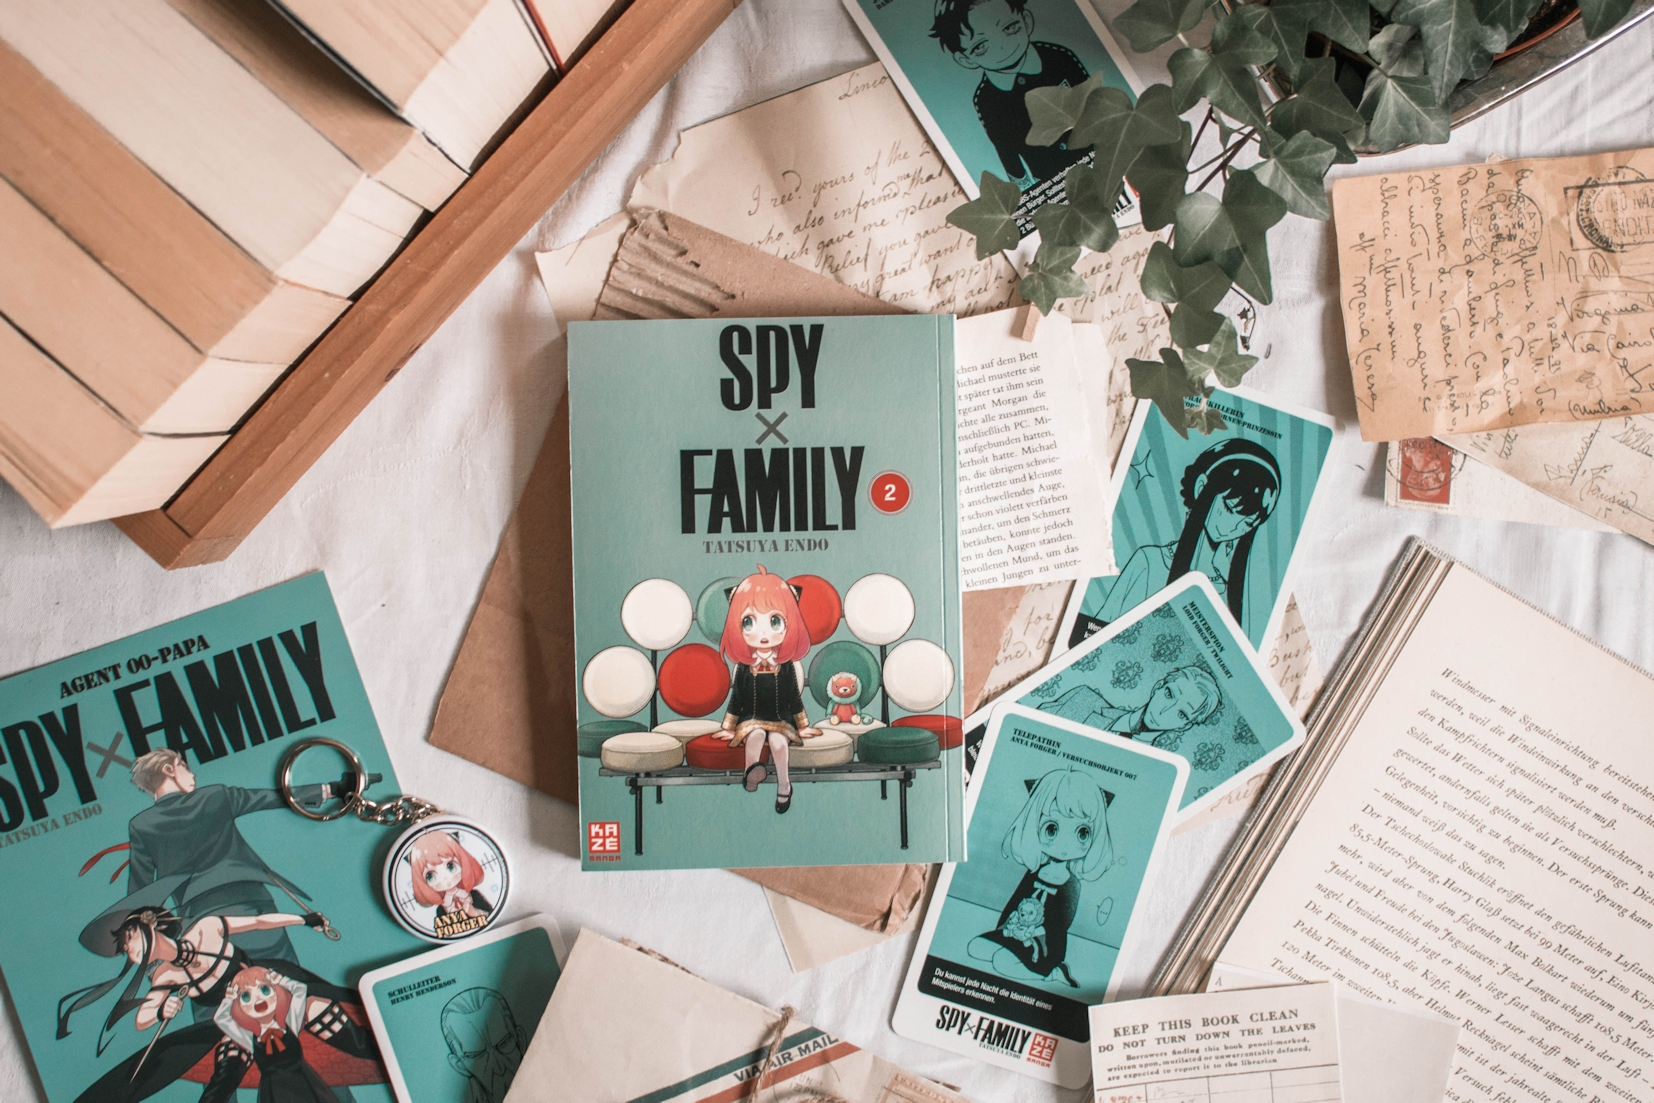 Rezension Spy x Family 2